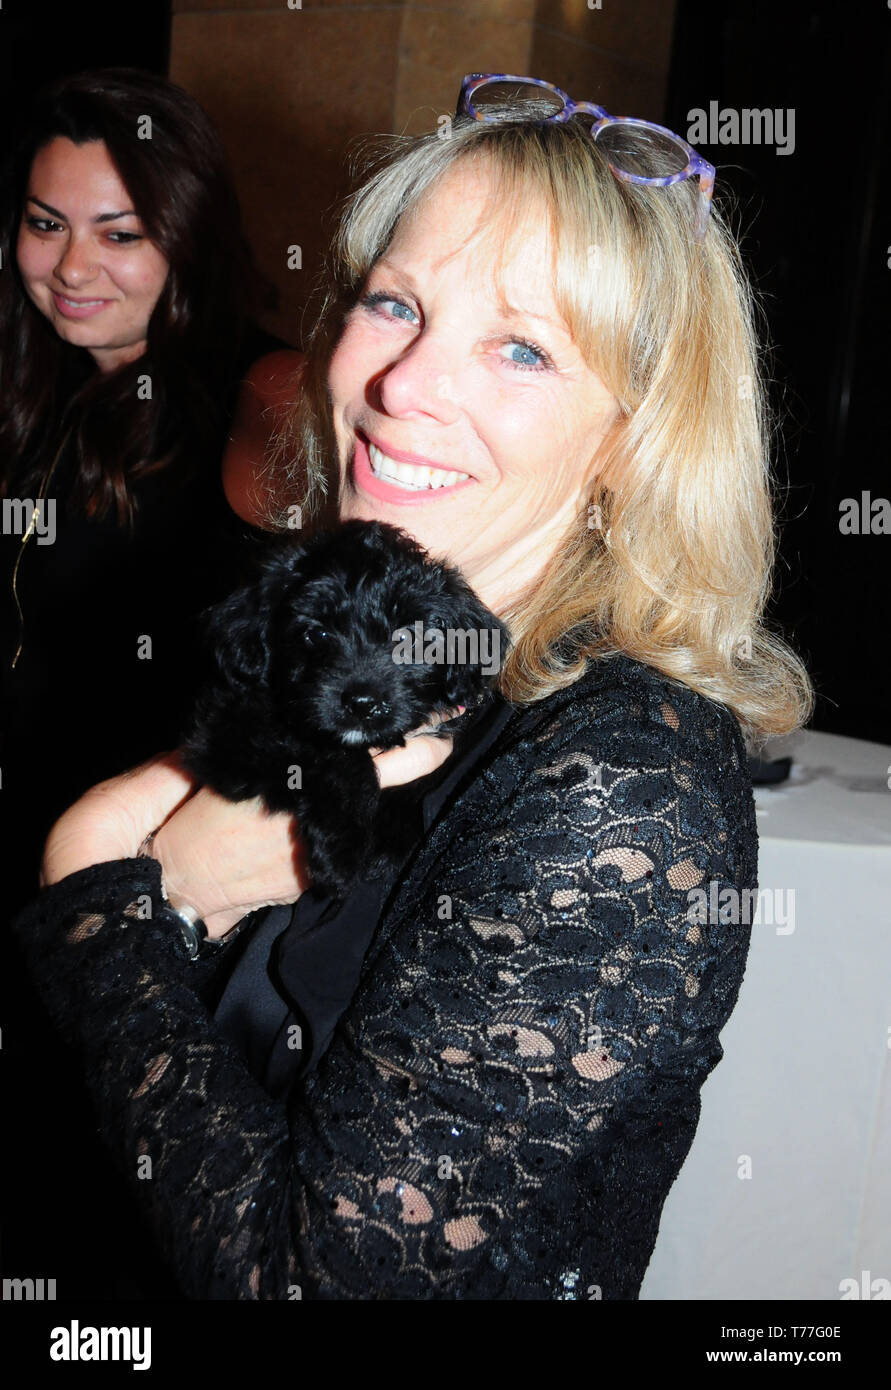 Beverly Hills, California, USA 4th May 2019 Cheri Warner and puppy Olive attend JDRF Los Angeles Imagine Gala on May 4, 2019 at the Beverly Hilton Hotel in Beverly Hills, California, USA. Photo by Barry King/Alamy Live News - Stock Image